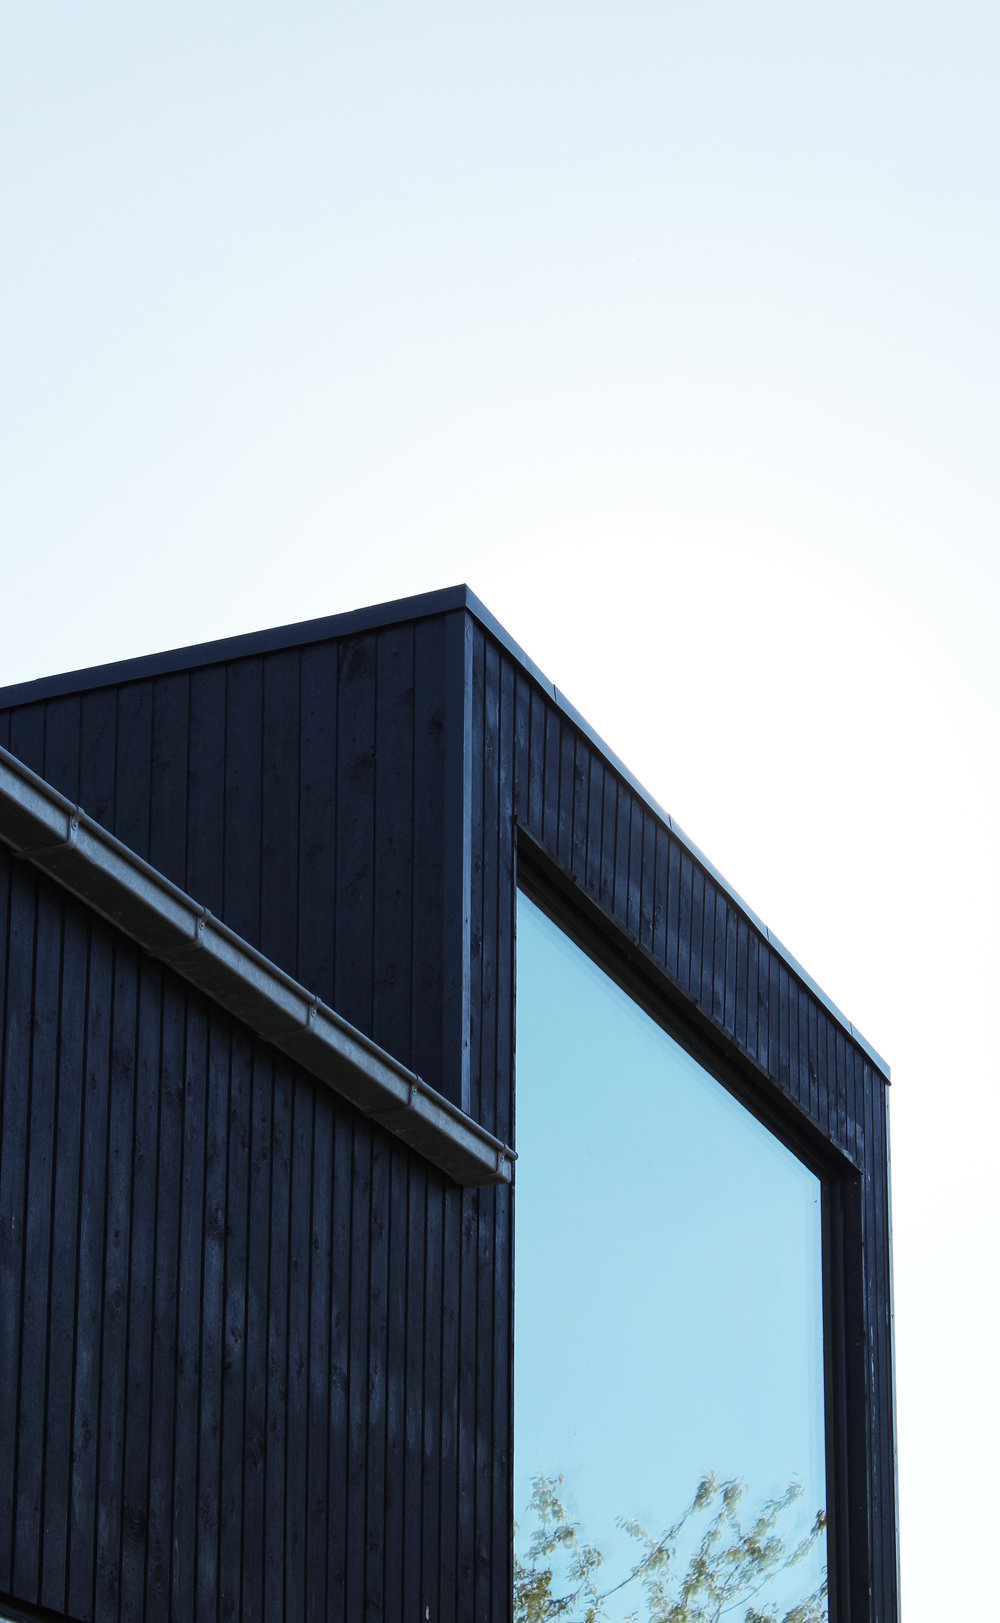 EXTENSION TO VILLA IN VIBY. New second floor in wooden cladding added to existing villa.